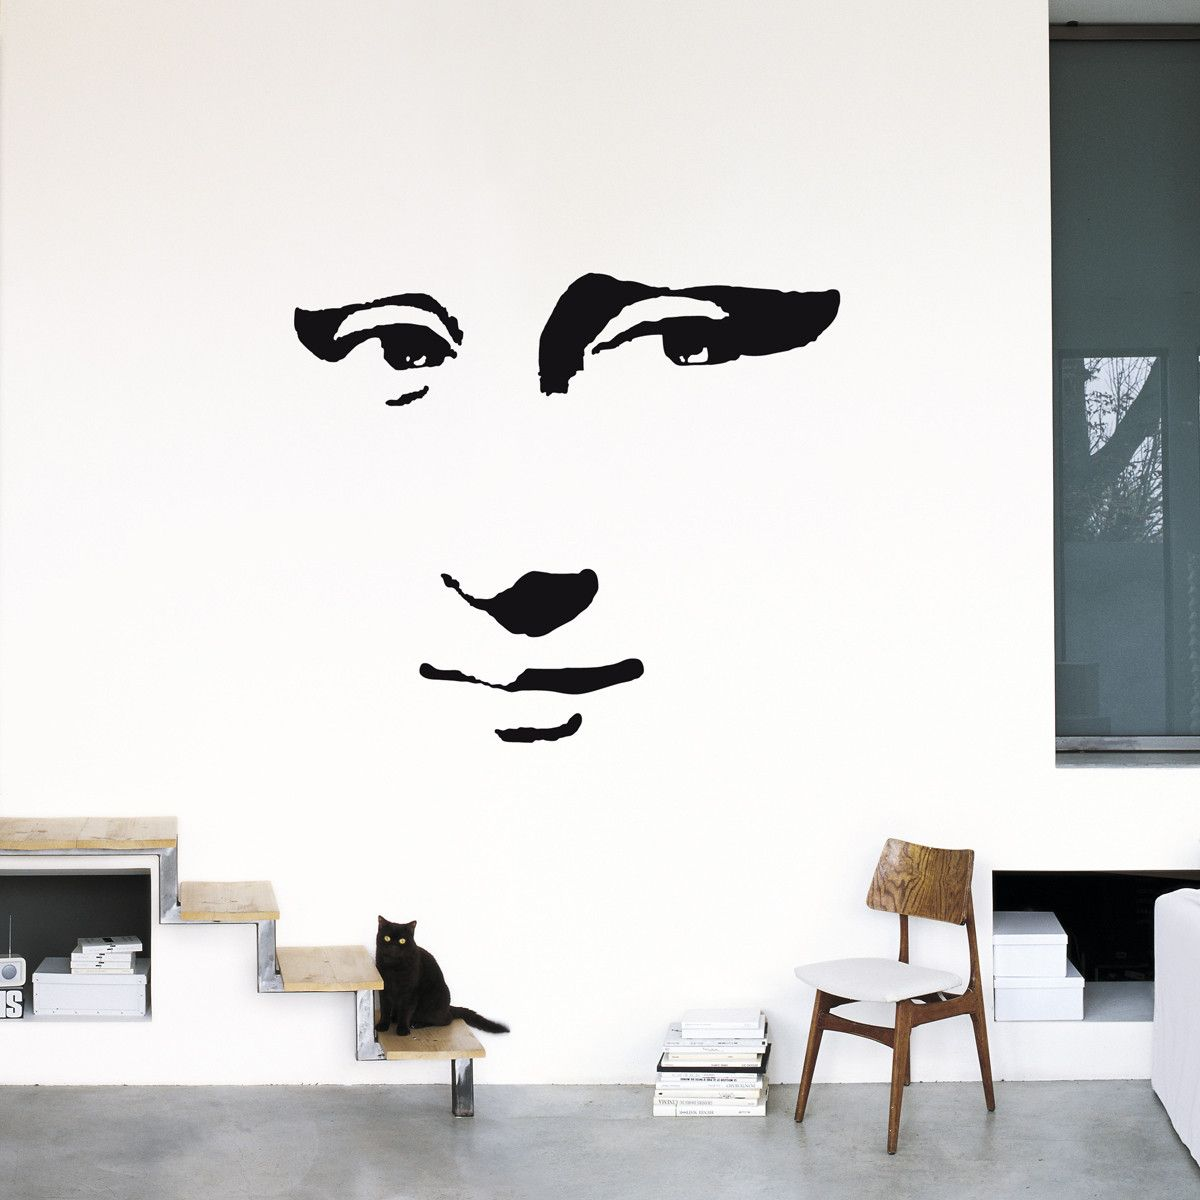 Mona Lisa Wall Decal By Nouvelles Images Crafts Diy Projects